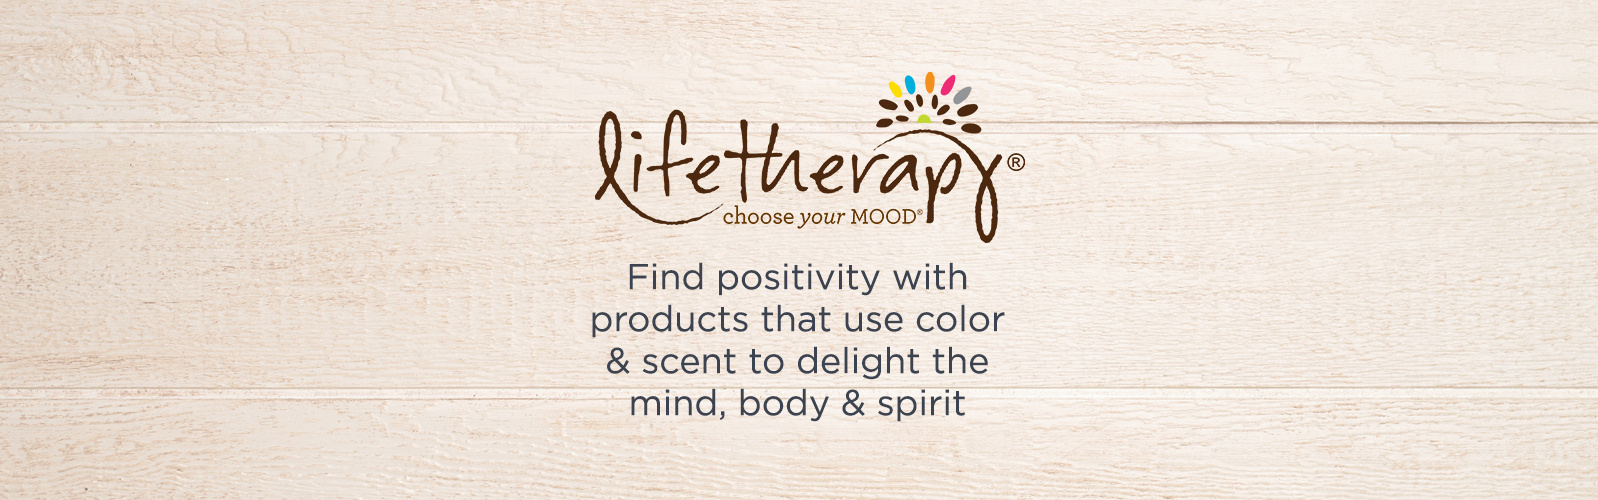 Lifetherapy. Find positivity with products that use color & scent to delight the mind, body & spirit